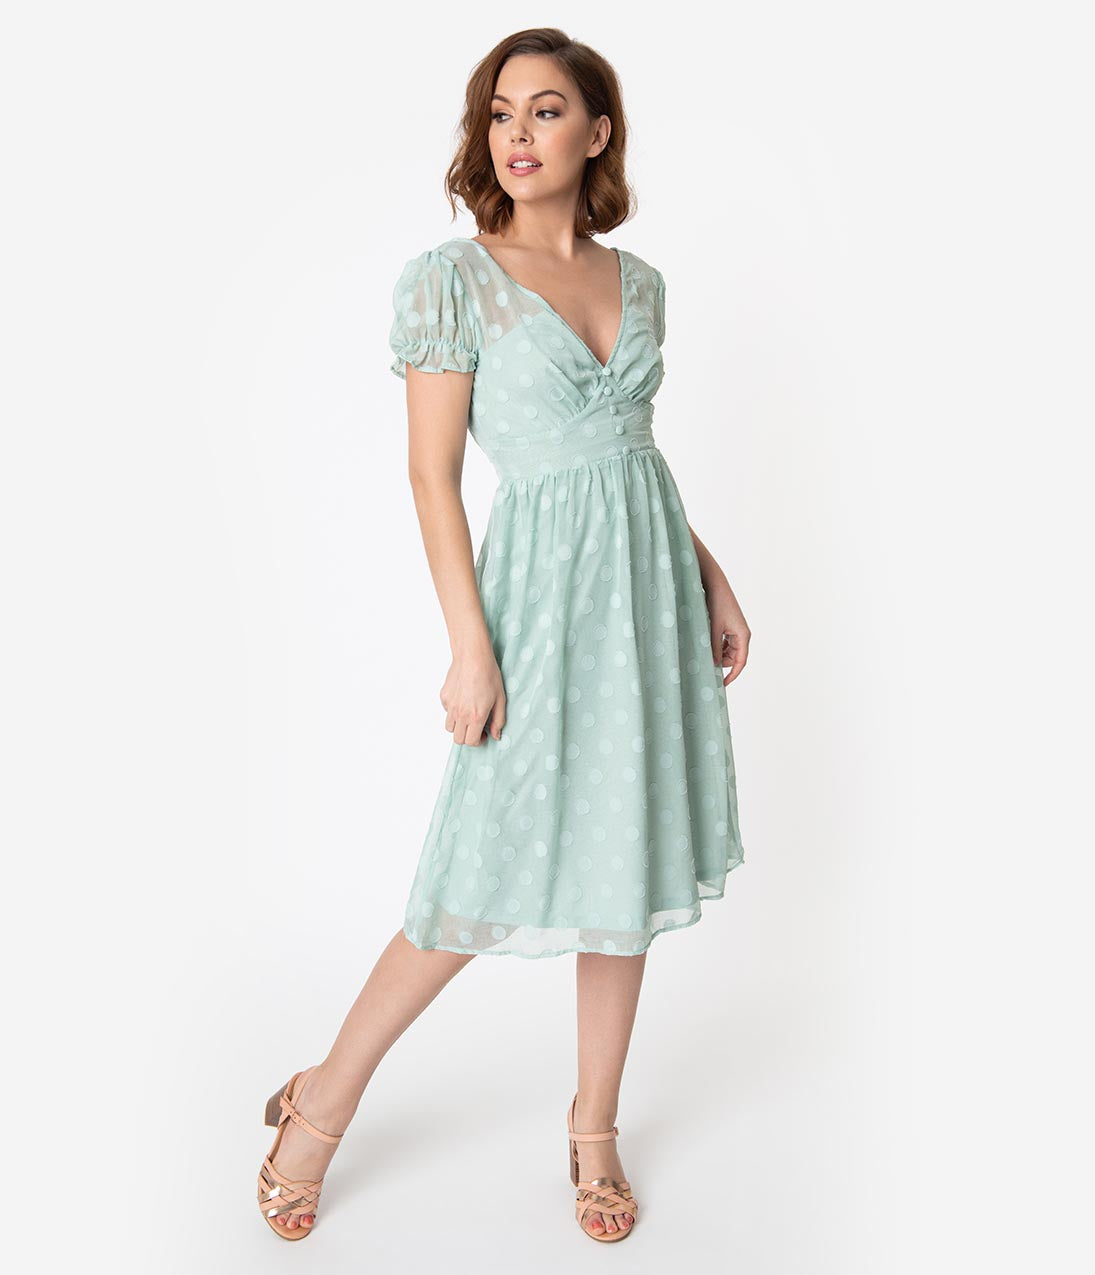 1940s Cocktail Dresses, Party Dresses Polka Dot Soft Textured Weave Fit  Flare Dress $58.00 AT vintagedancer.com